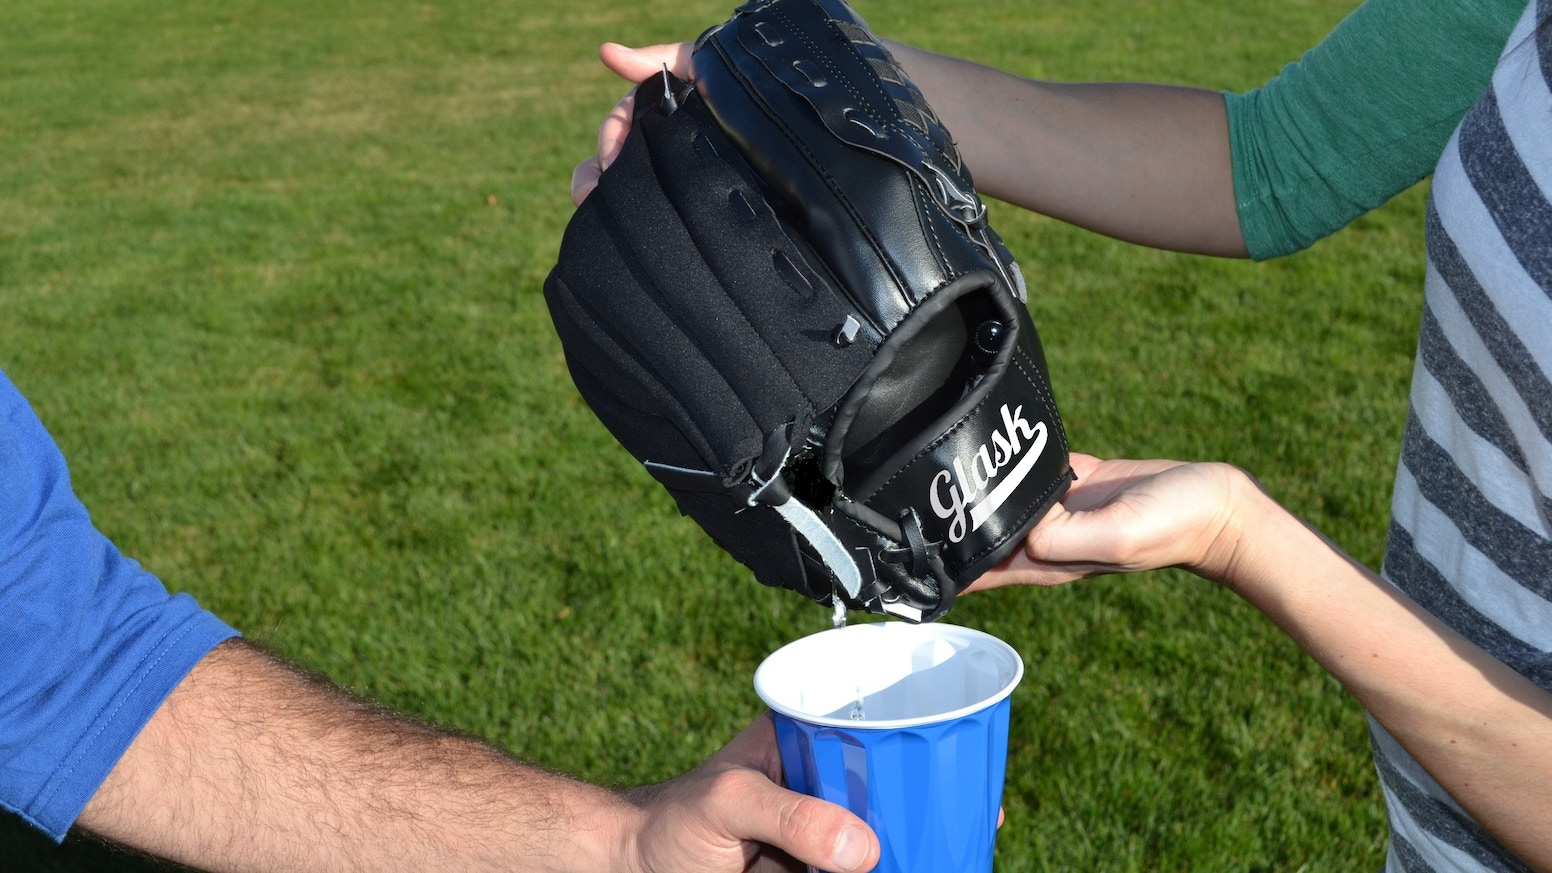 The Glask is a baseball glove with a pouch to hold a custom sized disposable flask with up to 8 oz. of liquid beverage.